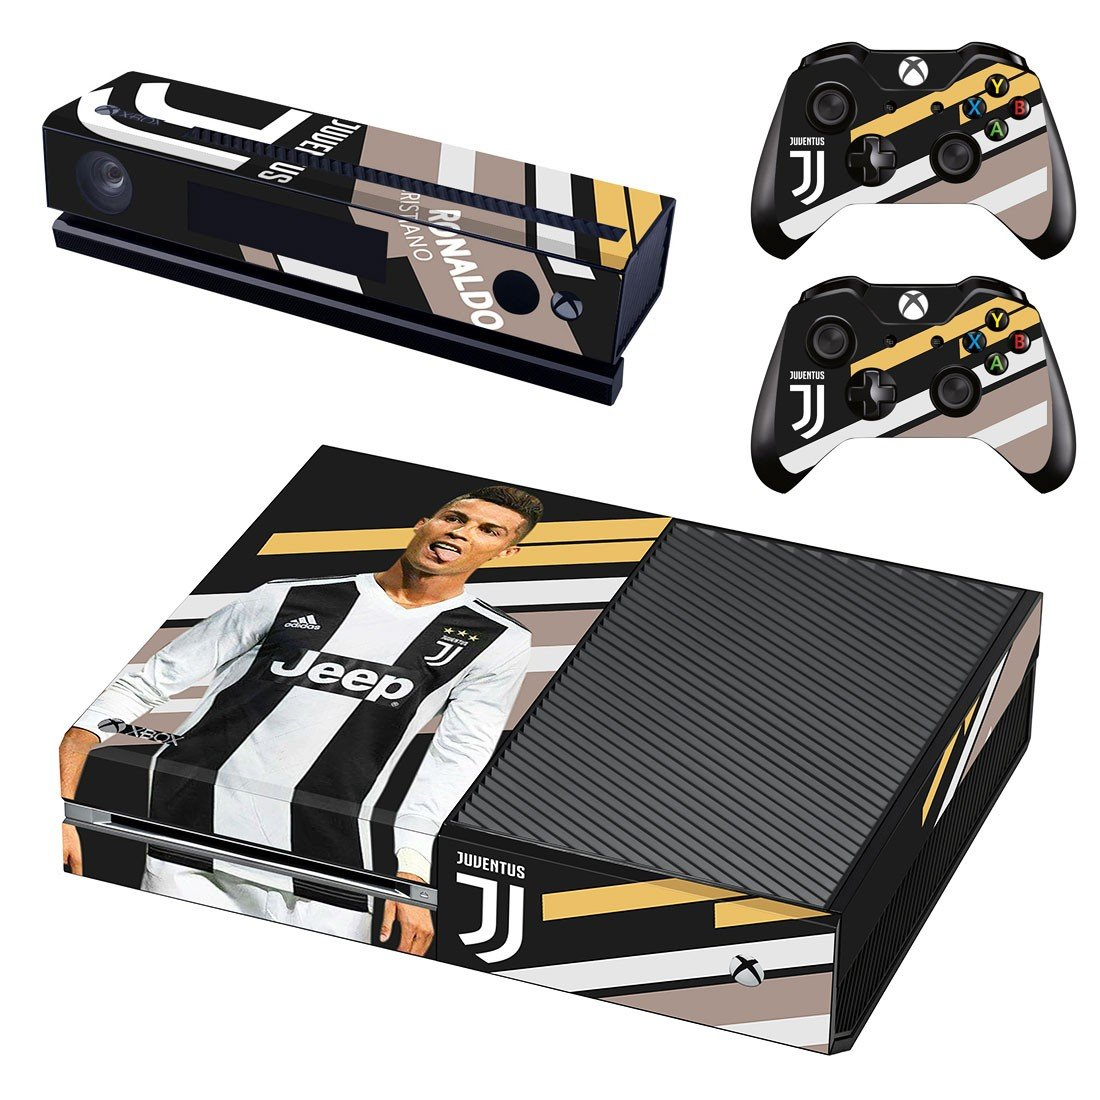 Cristiano Ronaldo decal skin sticker for Xbox One console and controllers